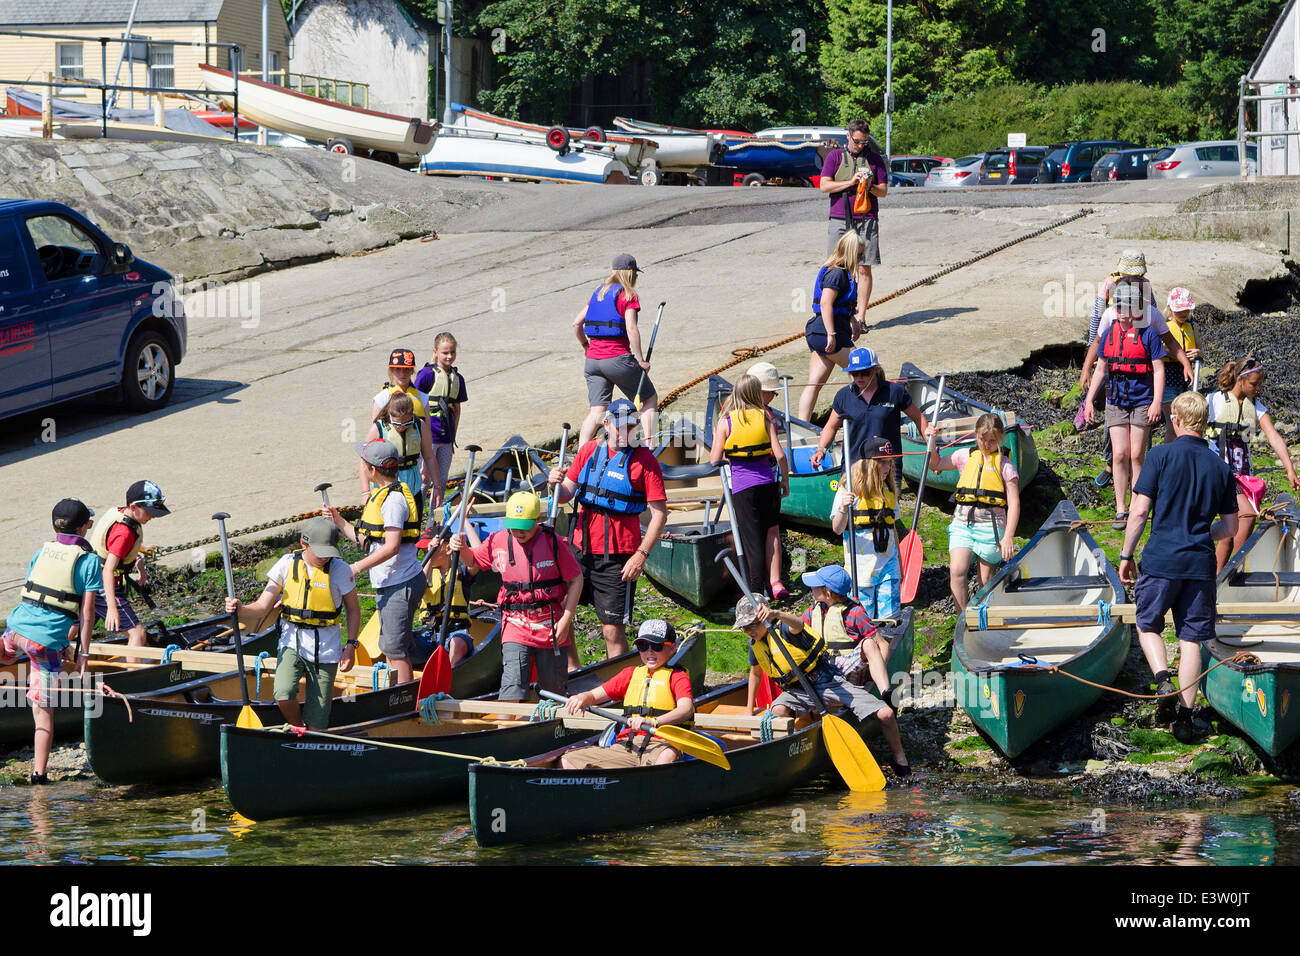 school children prepare to have canoe lessons on the river fowey in cornwall, uk - Stock Image